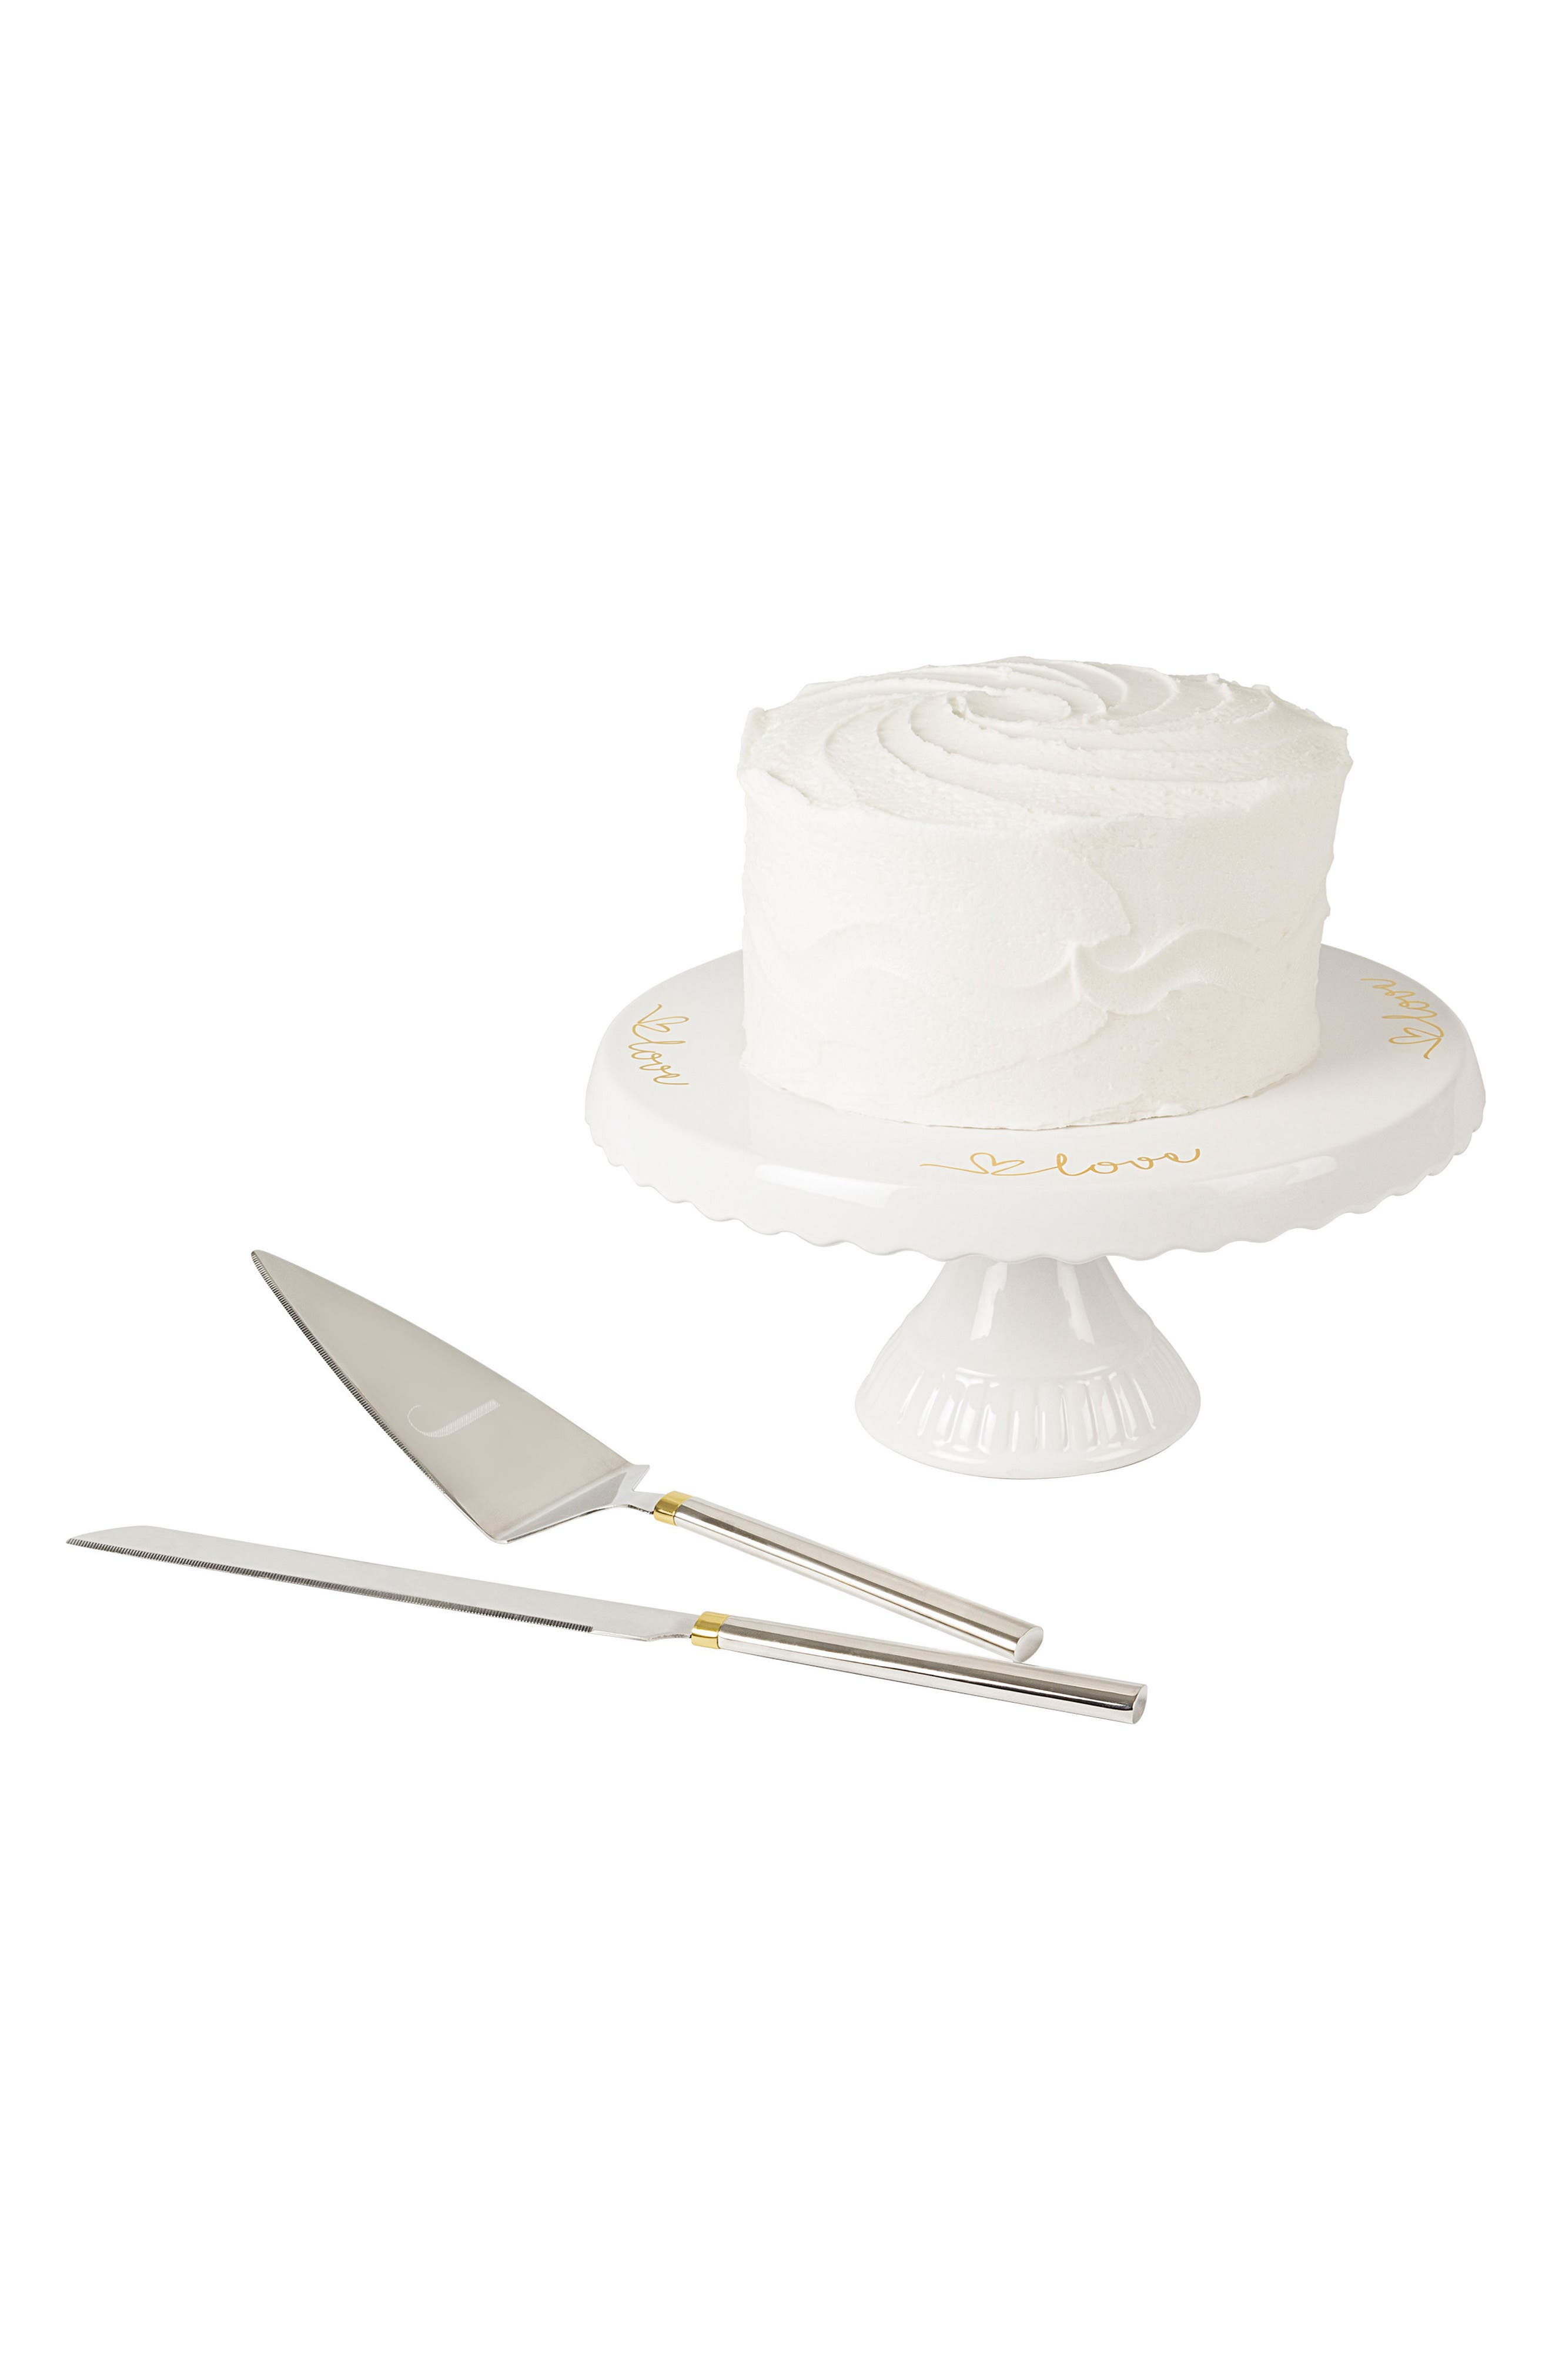 Love Monogram Cake Stand & Server Set,                             Main thumbnail 11, color,